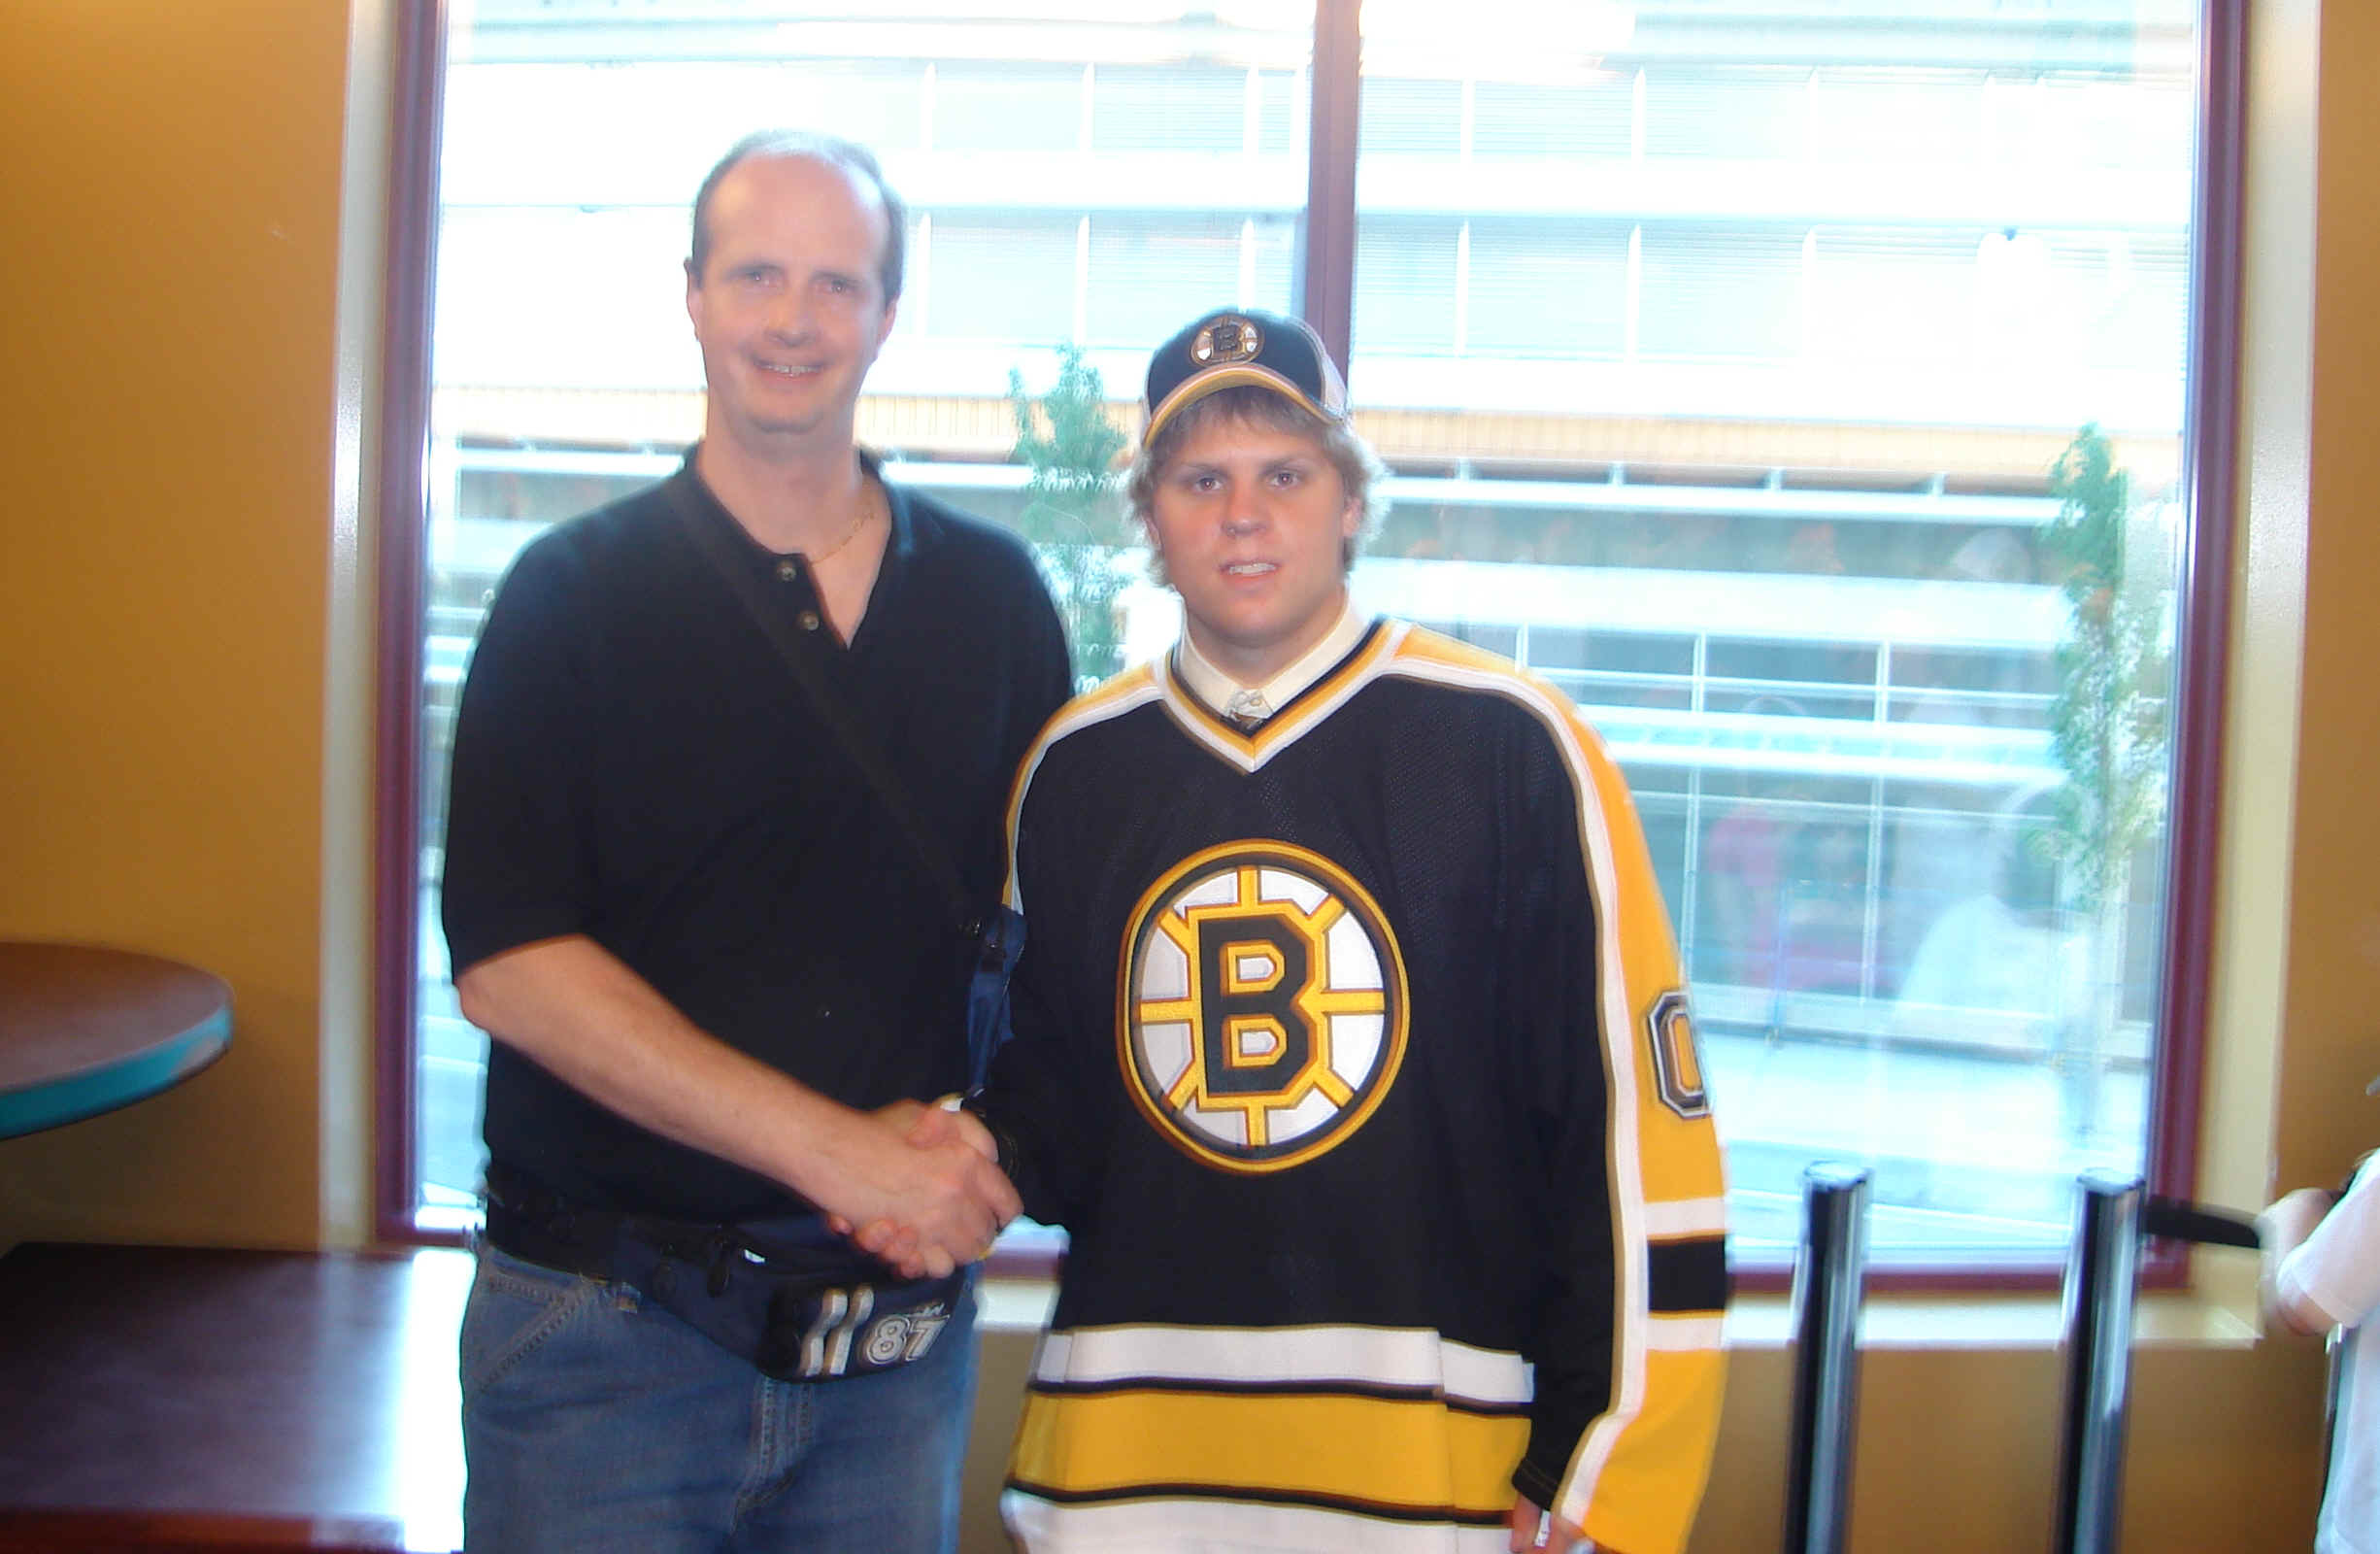 Me and Phil Kessel